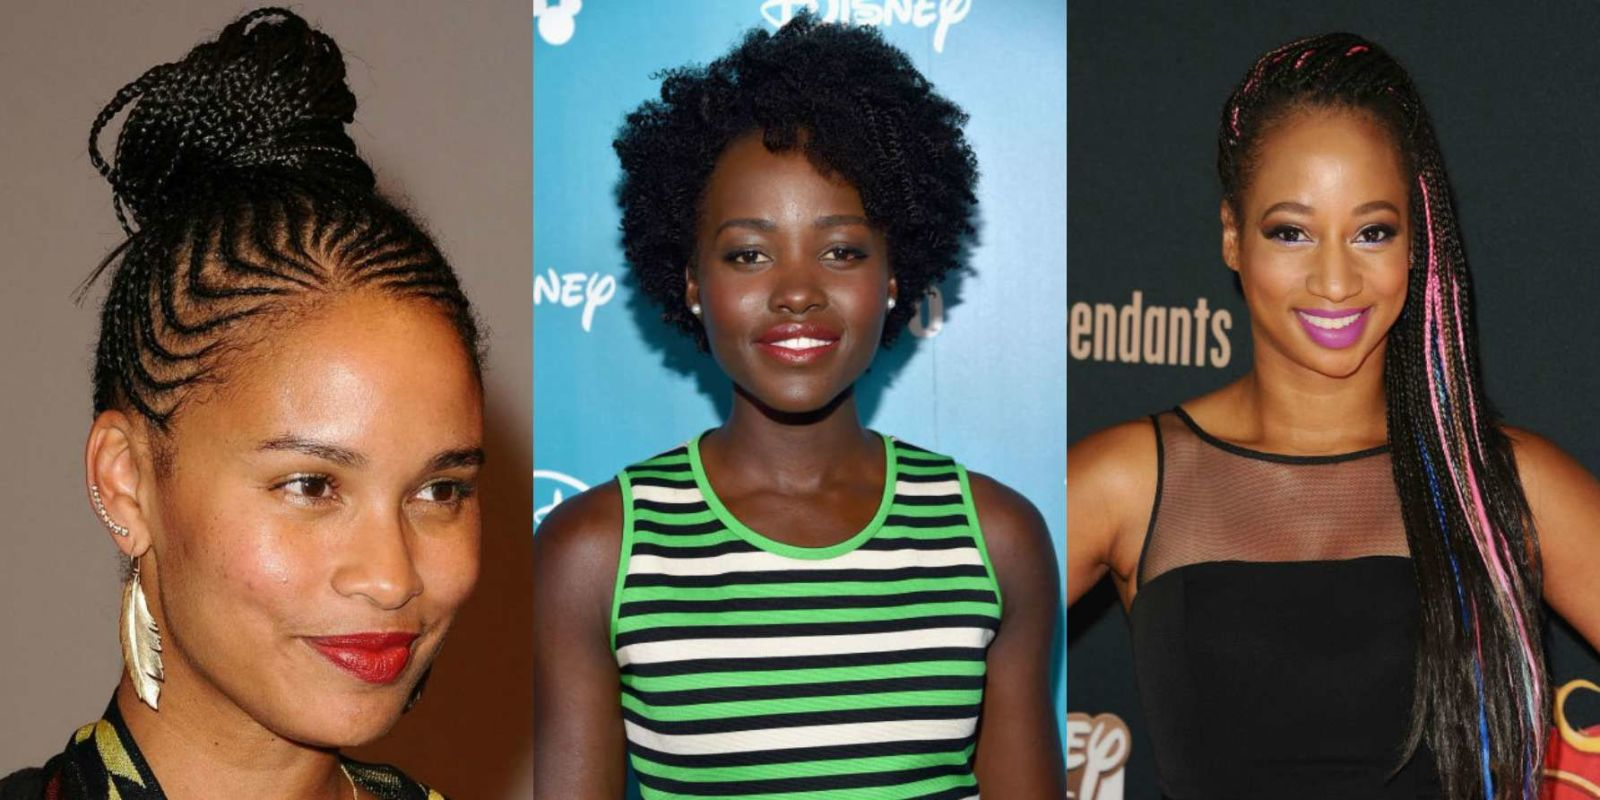 All Natural Hair Styles For Black Hair: Best Hairstyles For Black Women